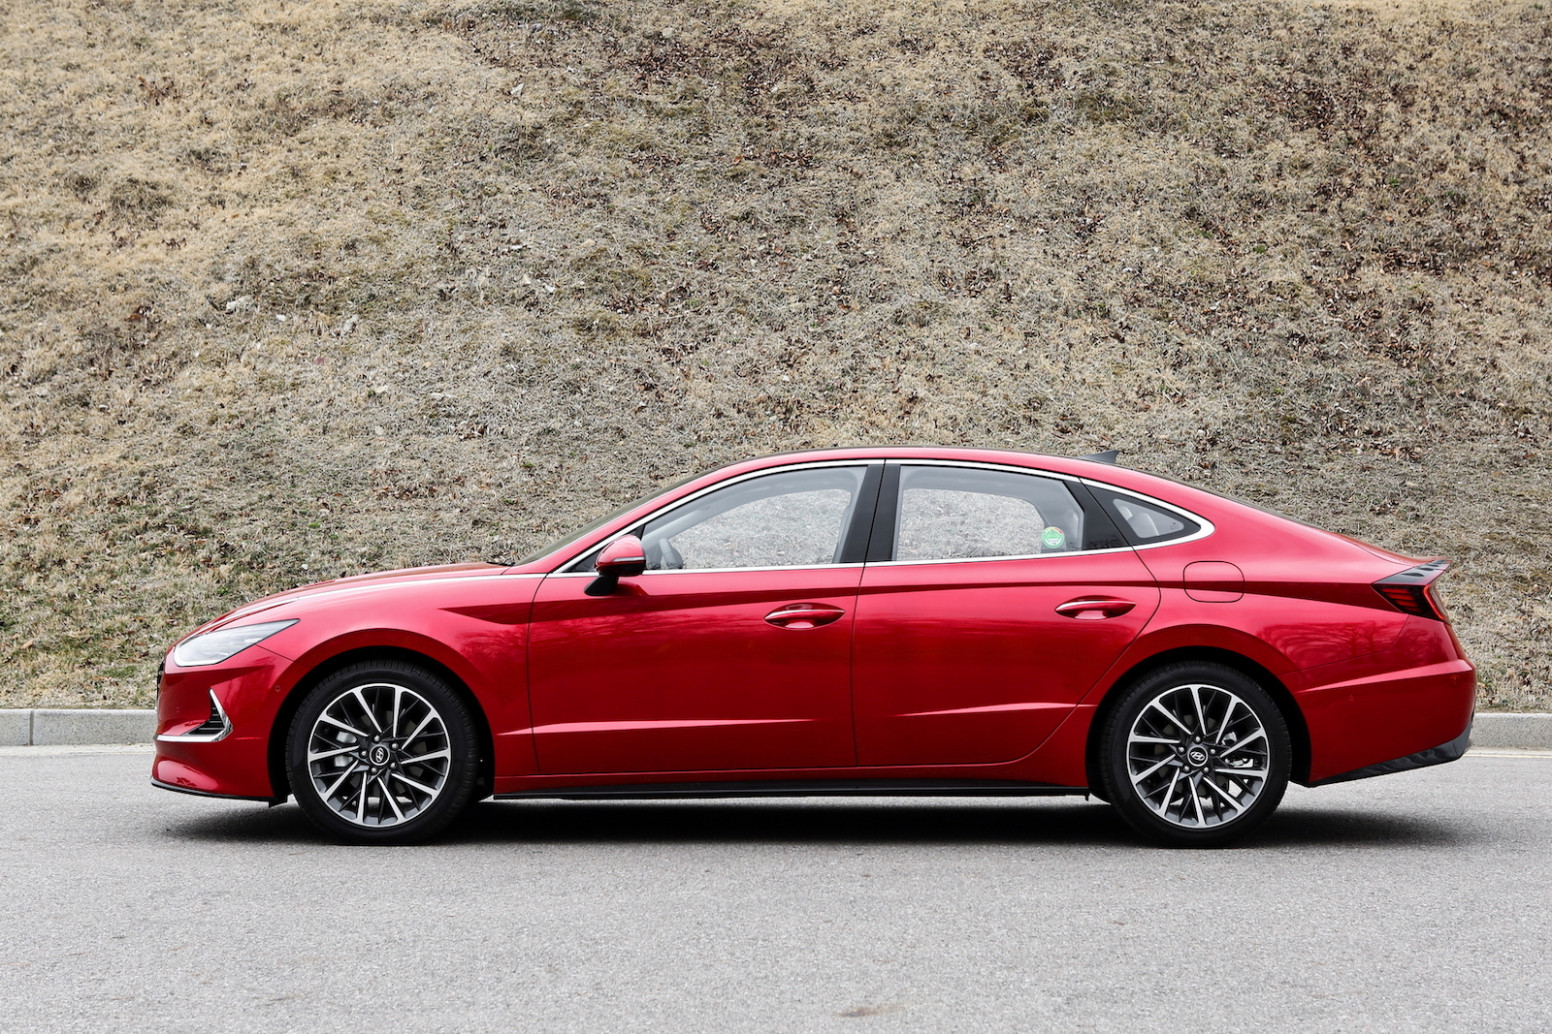 12 Hyundai Sonata Review, Ratings, Specs, Prices, and Photos ..